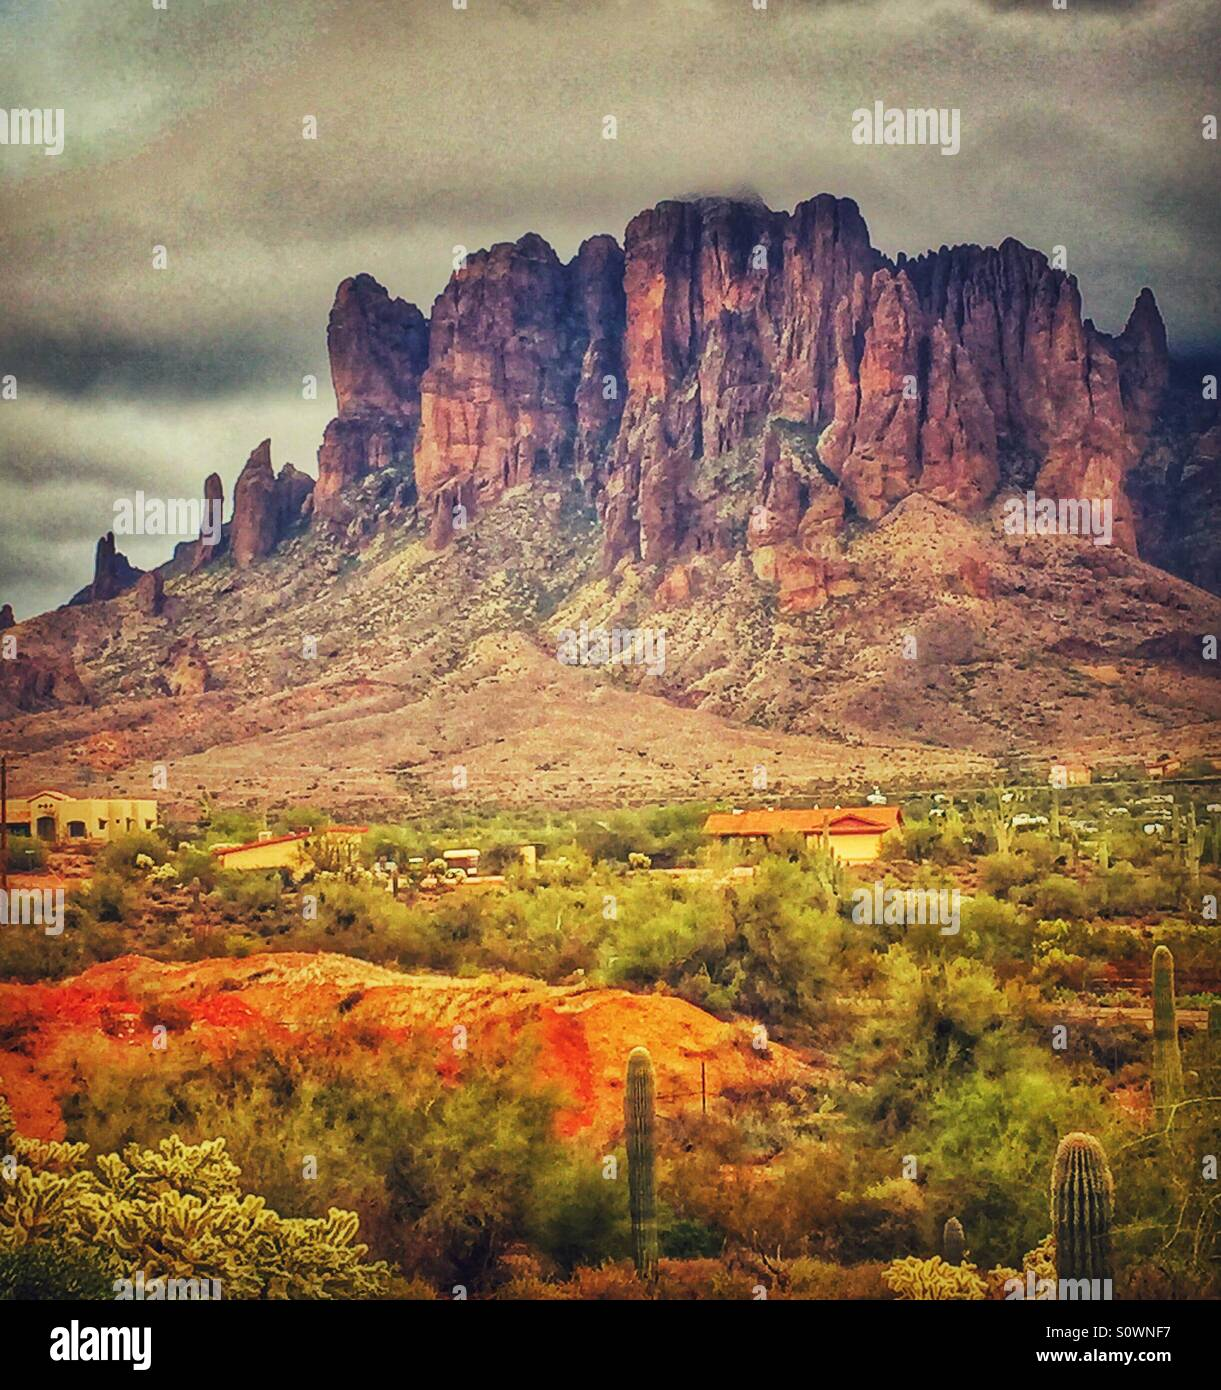 Superstition Mountains Stockbild